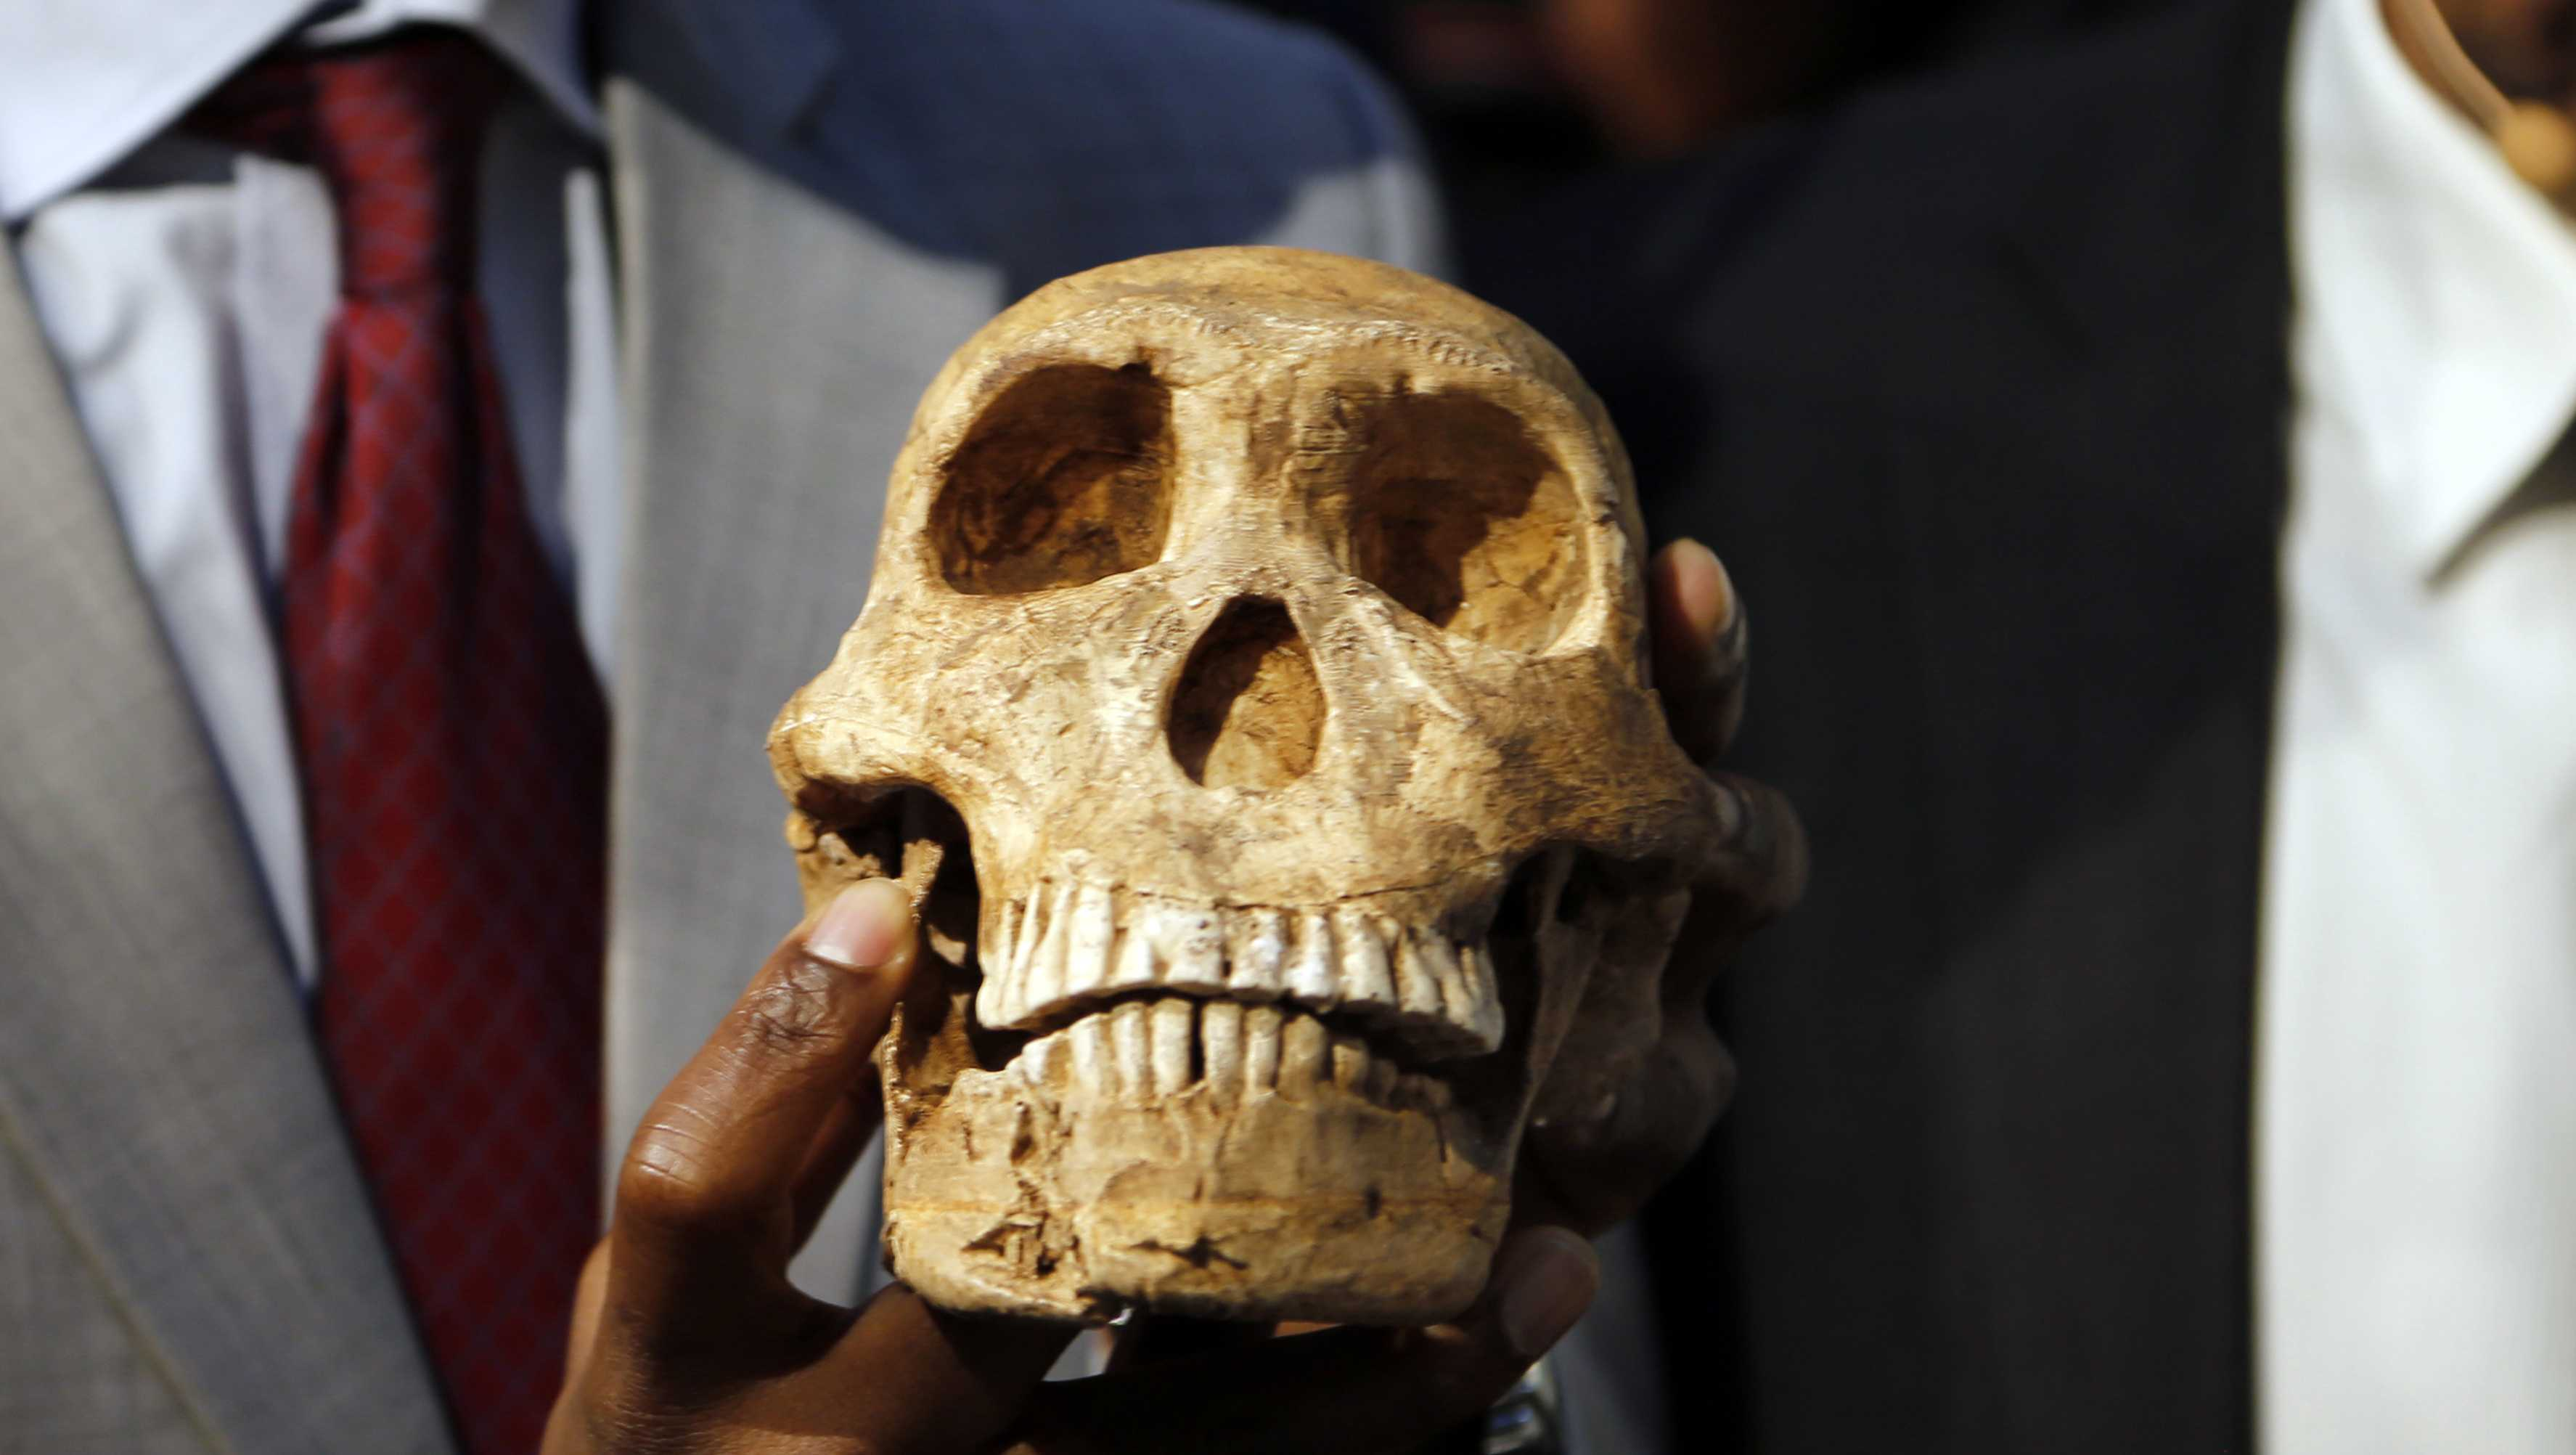 A replica skull of a species belonging to the human family tree whose remnants were first discovered in a South African cave in 2013 is held at the unveiling at the Maropeng Museum, near Magaliesburg, South Africa, Tuesday, May 9, 2017. The species lived several hundred thousand years ago, indicating the creature was alive at the same time as the first humans in Africa, scientists said Tuesday.